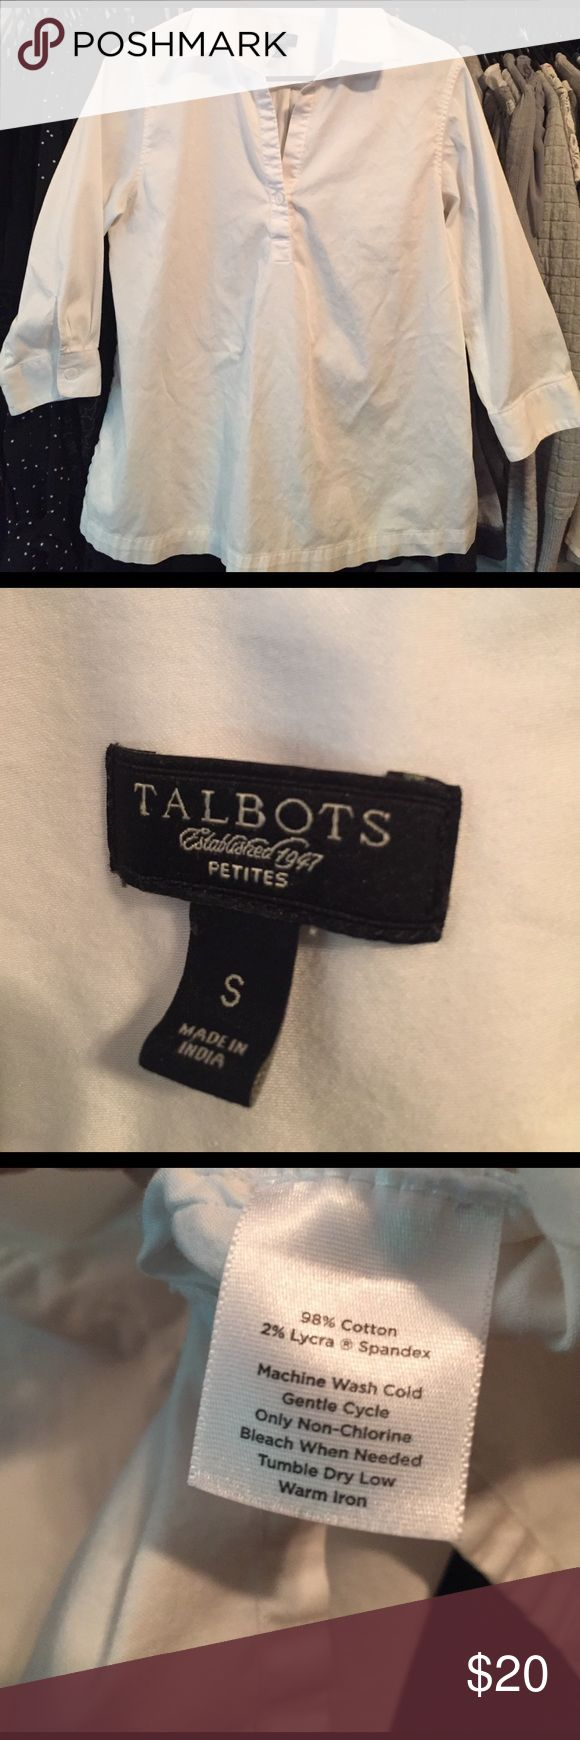 Talbots White Top Cotton Clean spring/summer classic and basic white tunic w/buttons. Gently used & in great condition. A staple in your closet. Size is Small Petite. Sleeves are 3/4 and has two small slits on sides. One button front with collar. A great quality brand. 98% Cotton, 2% Lycra. White Tops in 1st & 2nd picture are not actually the one for sale, pictures posted for outfit idea from blogger website, 2nd one very similar in style. Actual top seen in pictures that follow. Comfy, a…